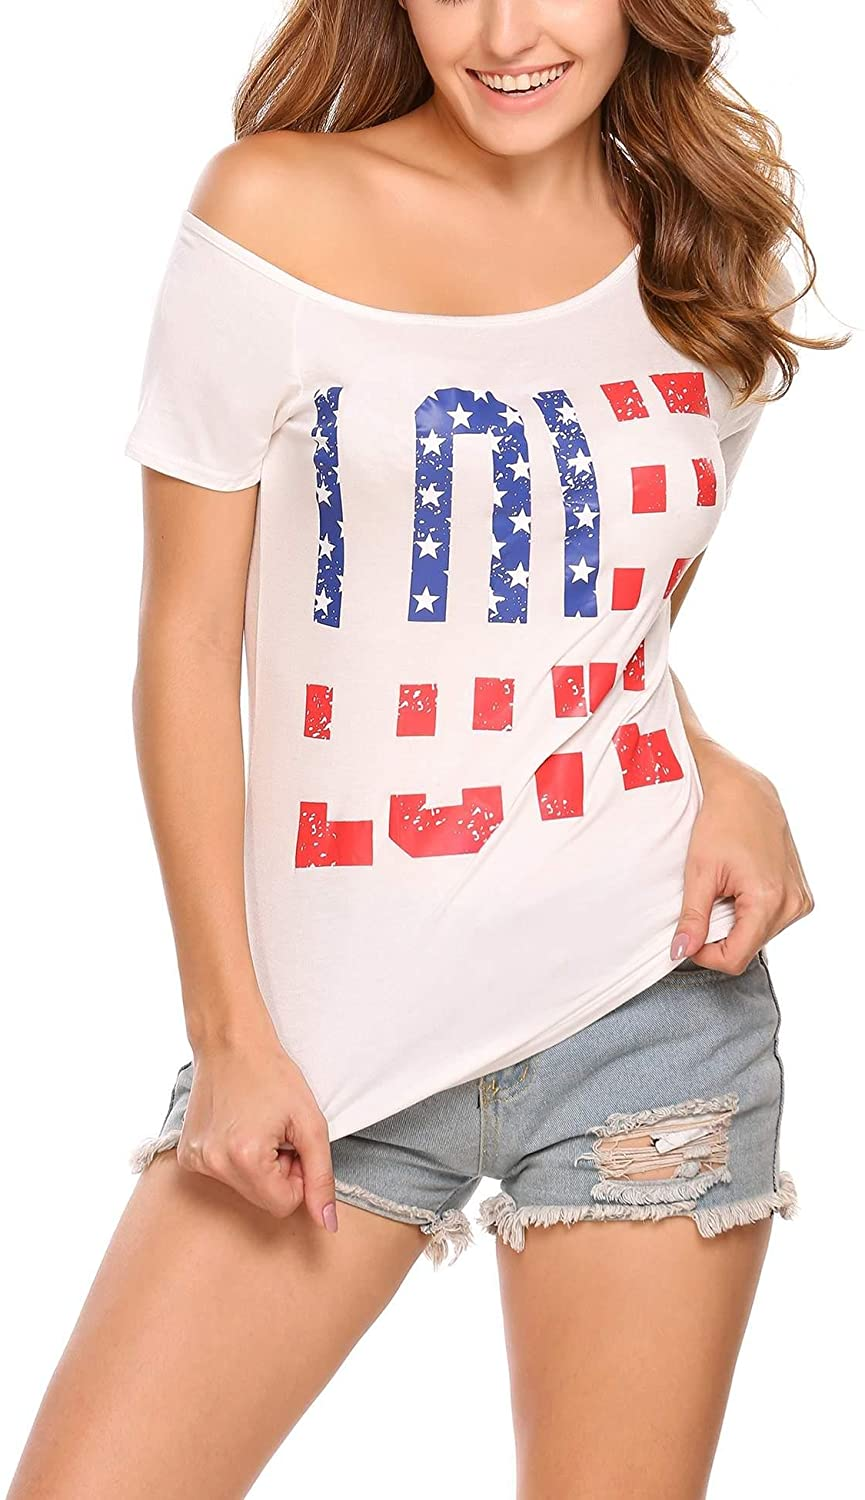 EASTHER Women's American Flag Printing Short Sleeve Cold Shoulder Casual Blouse T-Shirt Tops